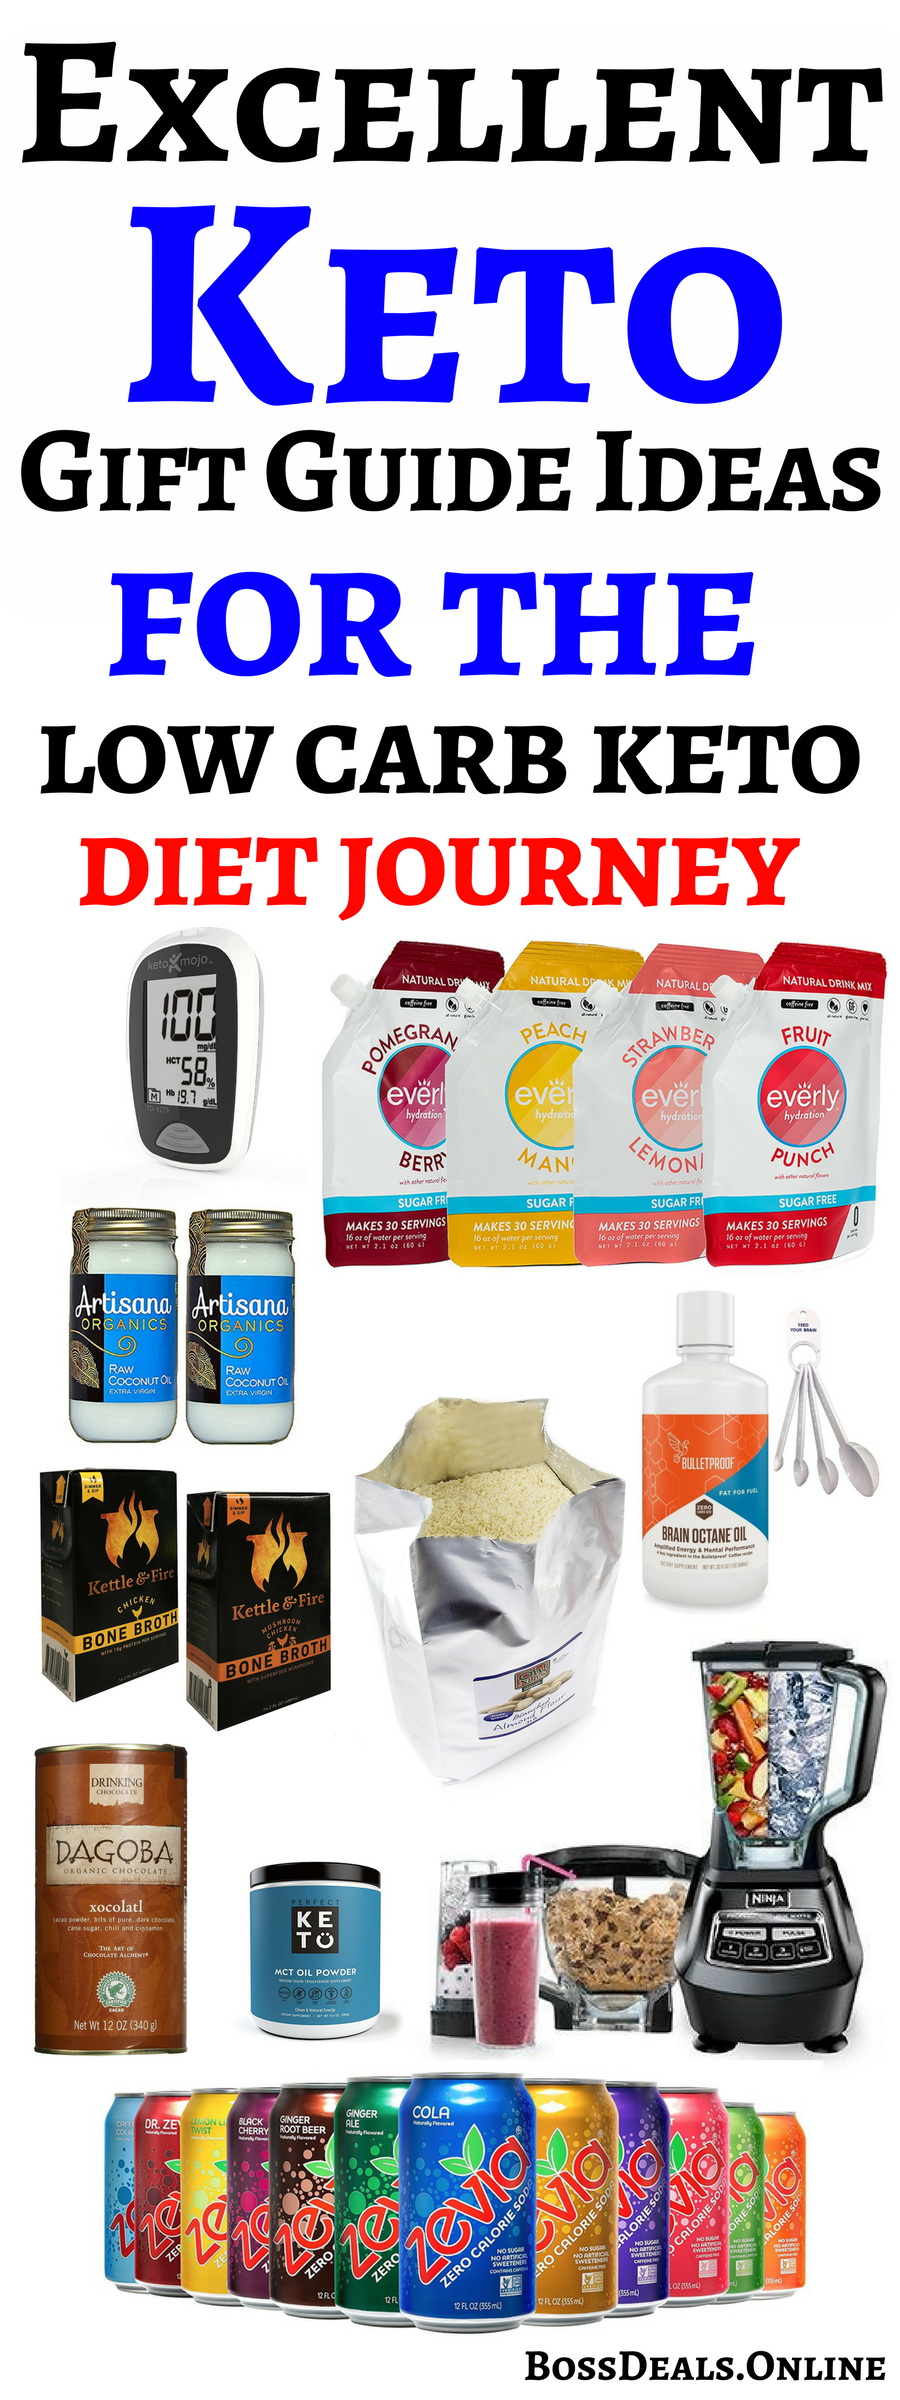 A Keto Gift Guide for you or your friend, for starting the ketogenic diet journey.In this post ...